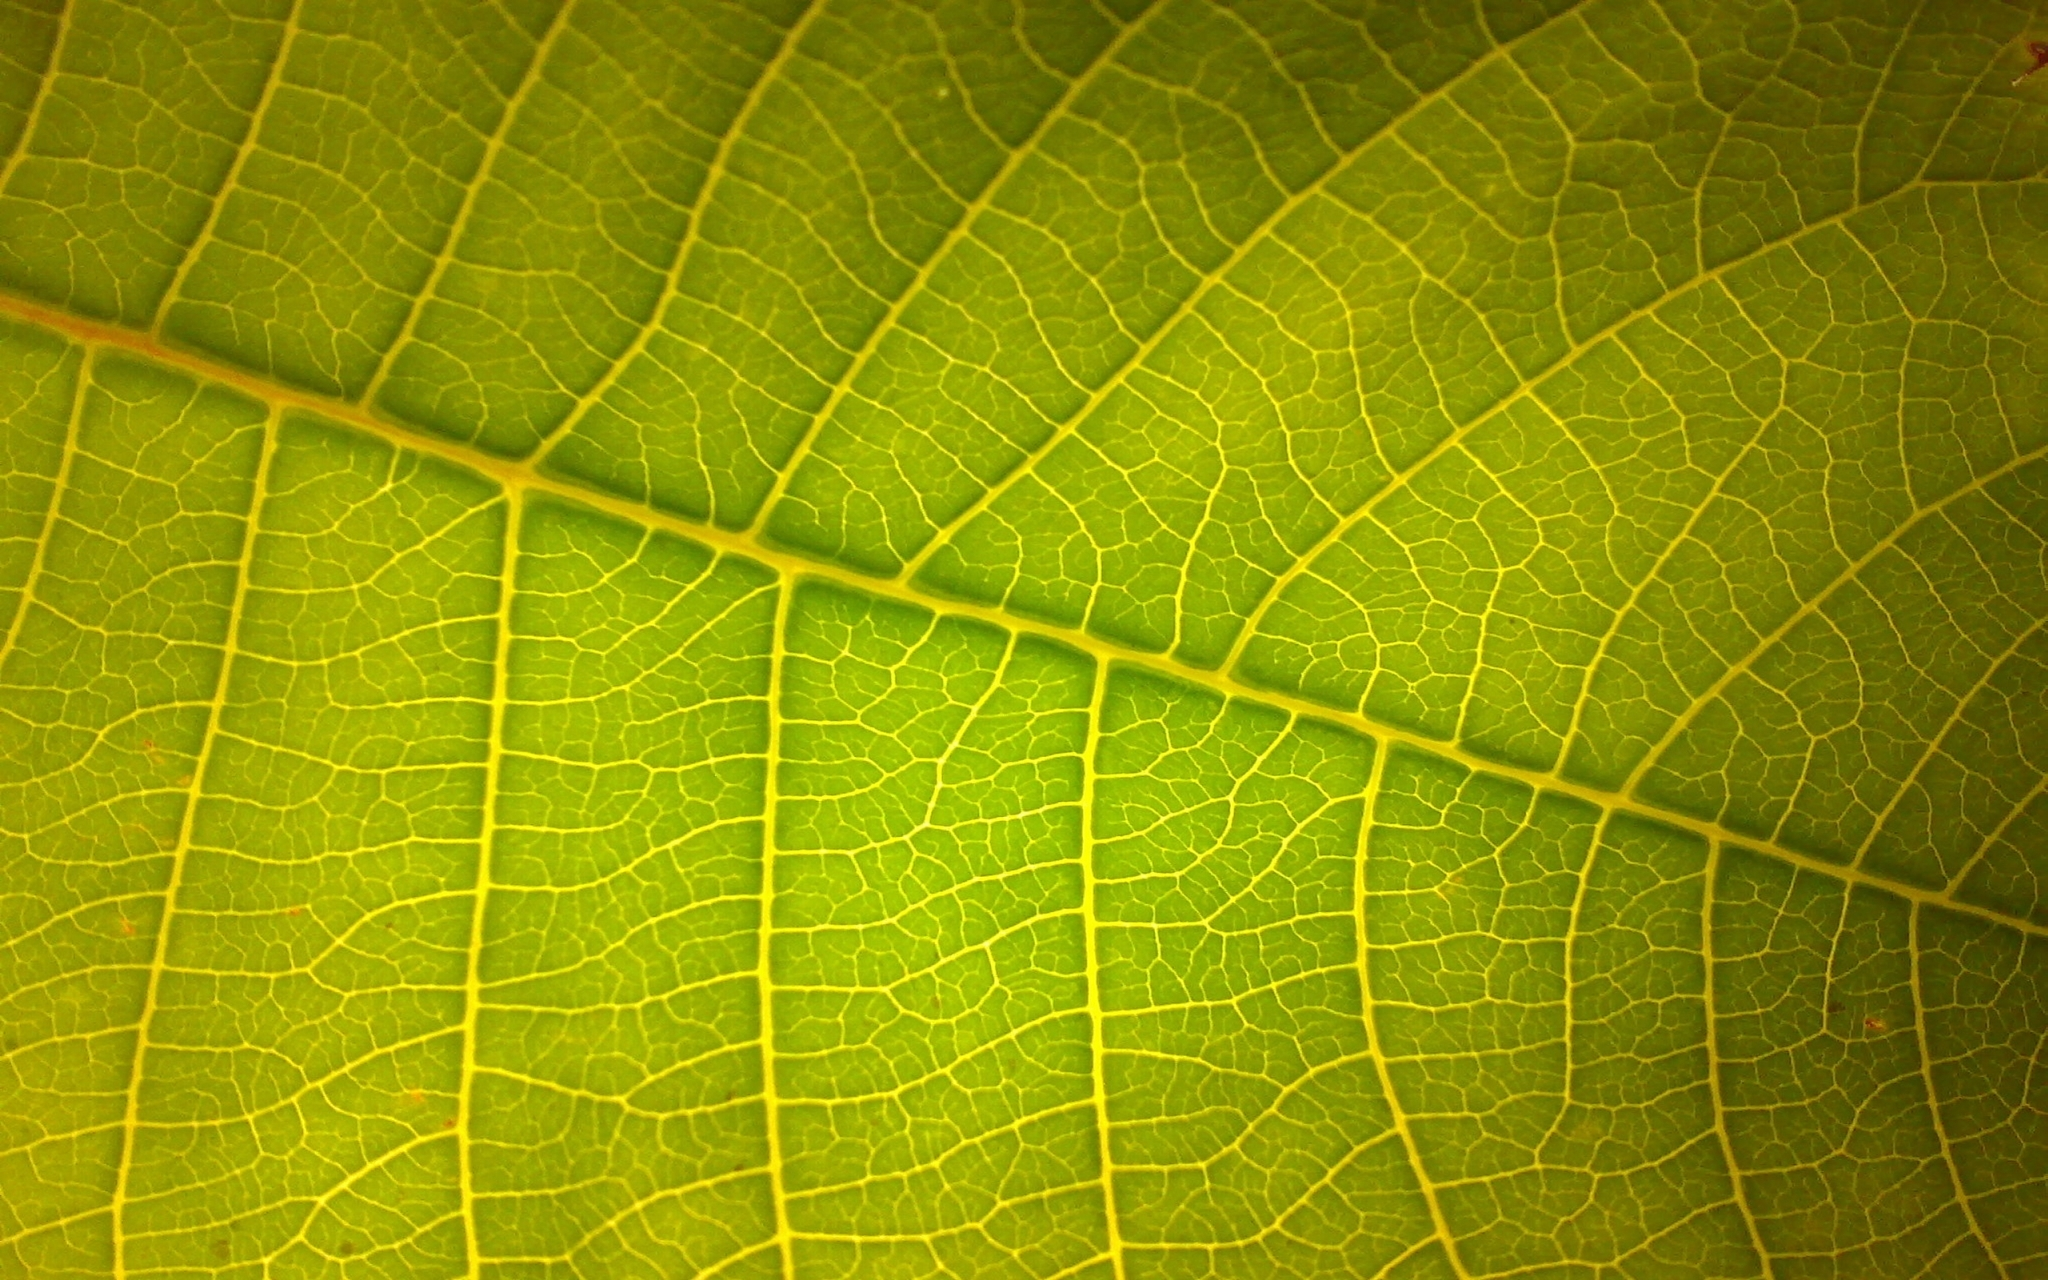 Picture of Macros of My Garden Shot Via Mobile Phone